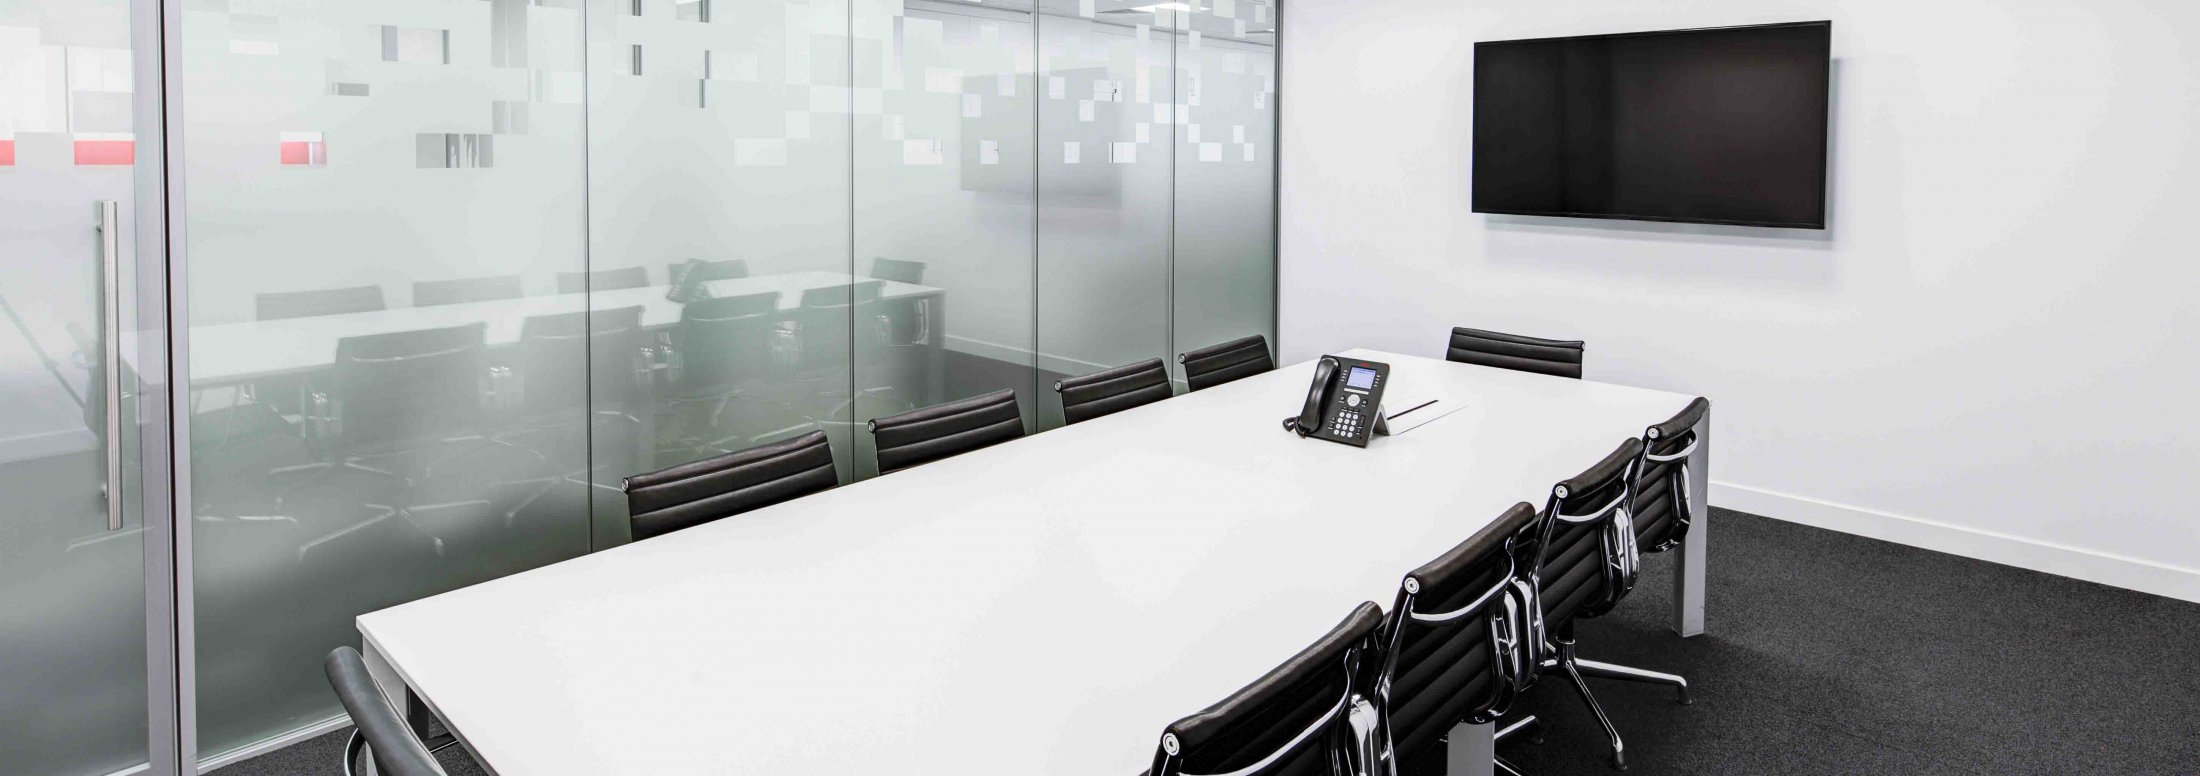 Meeting Room Hire in central London | Waterloo Hub Hotel, London